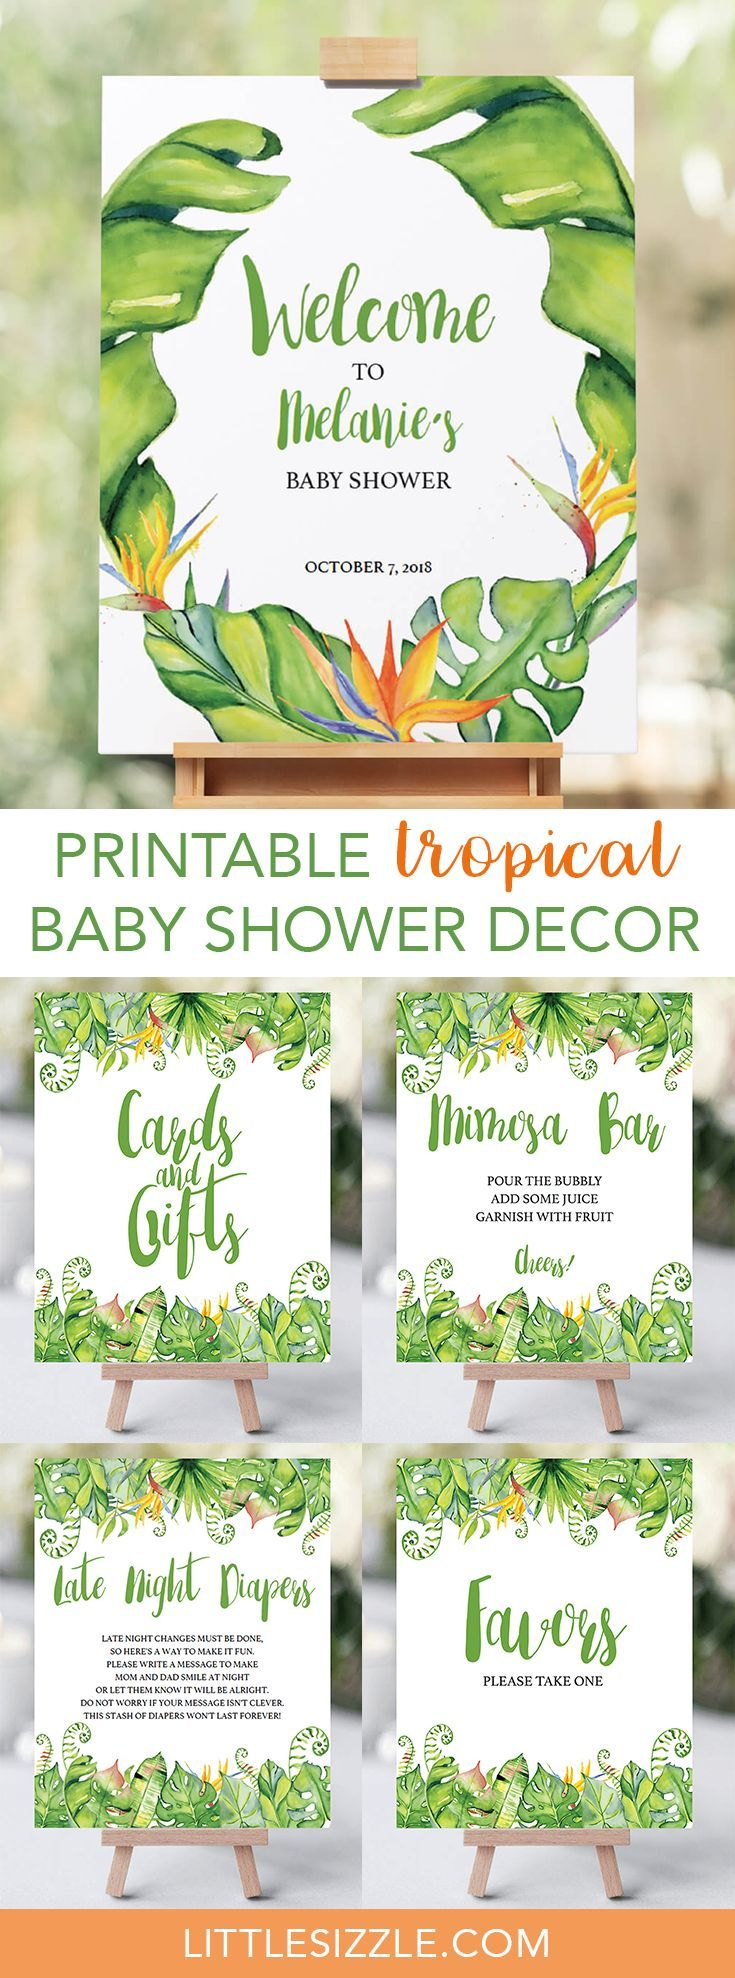 Tropical baby shower decor ideas by LittleSizzle. Decorating your tropical baby shower is almost as fun as the party itself! With these beautiful tropical themed DIY signs with green banana leaf, you will add a great touch to any neutral baby shower. This green shower decor pack includes a welcome sign, mimosa bar sign, favors sign and cards and gifts sign. #babyshowerdecor #babyshowerthemes #DIY #printable #greenleaf #Hawaiian #Luau